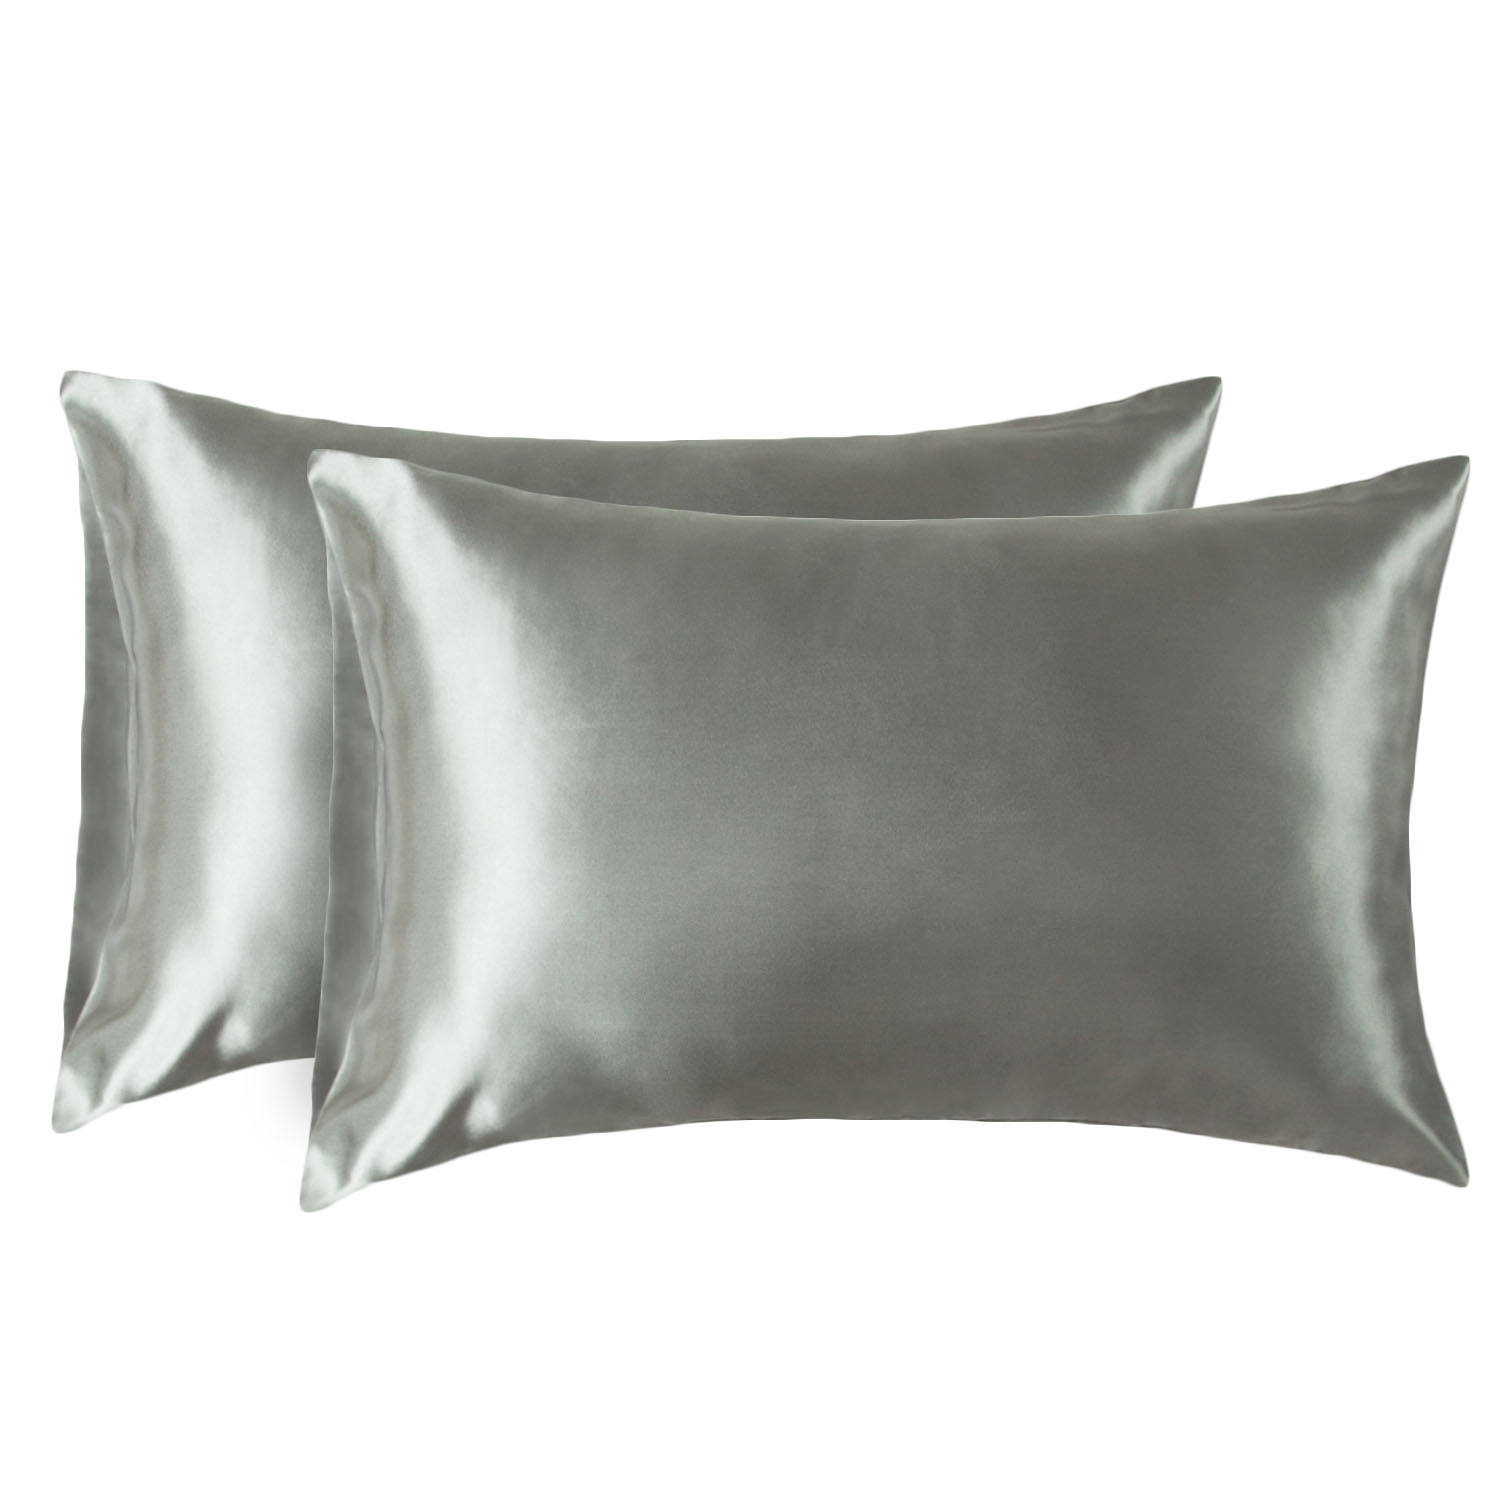 Queen Size Silk Satin Pillowcase 2 Pack for Hair and Skin